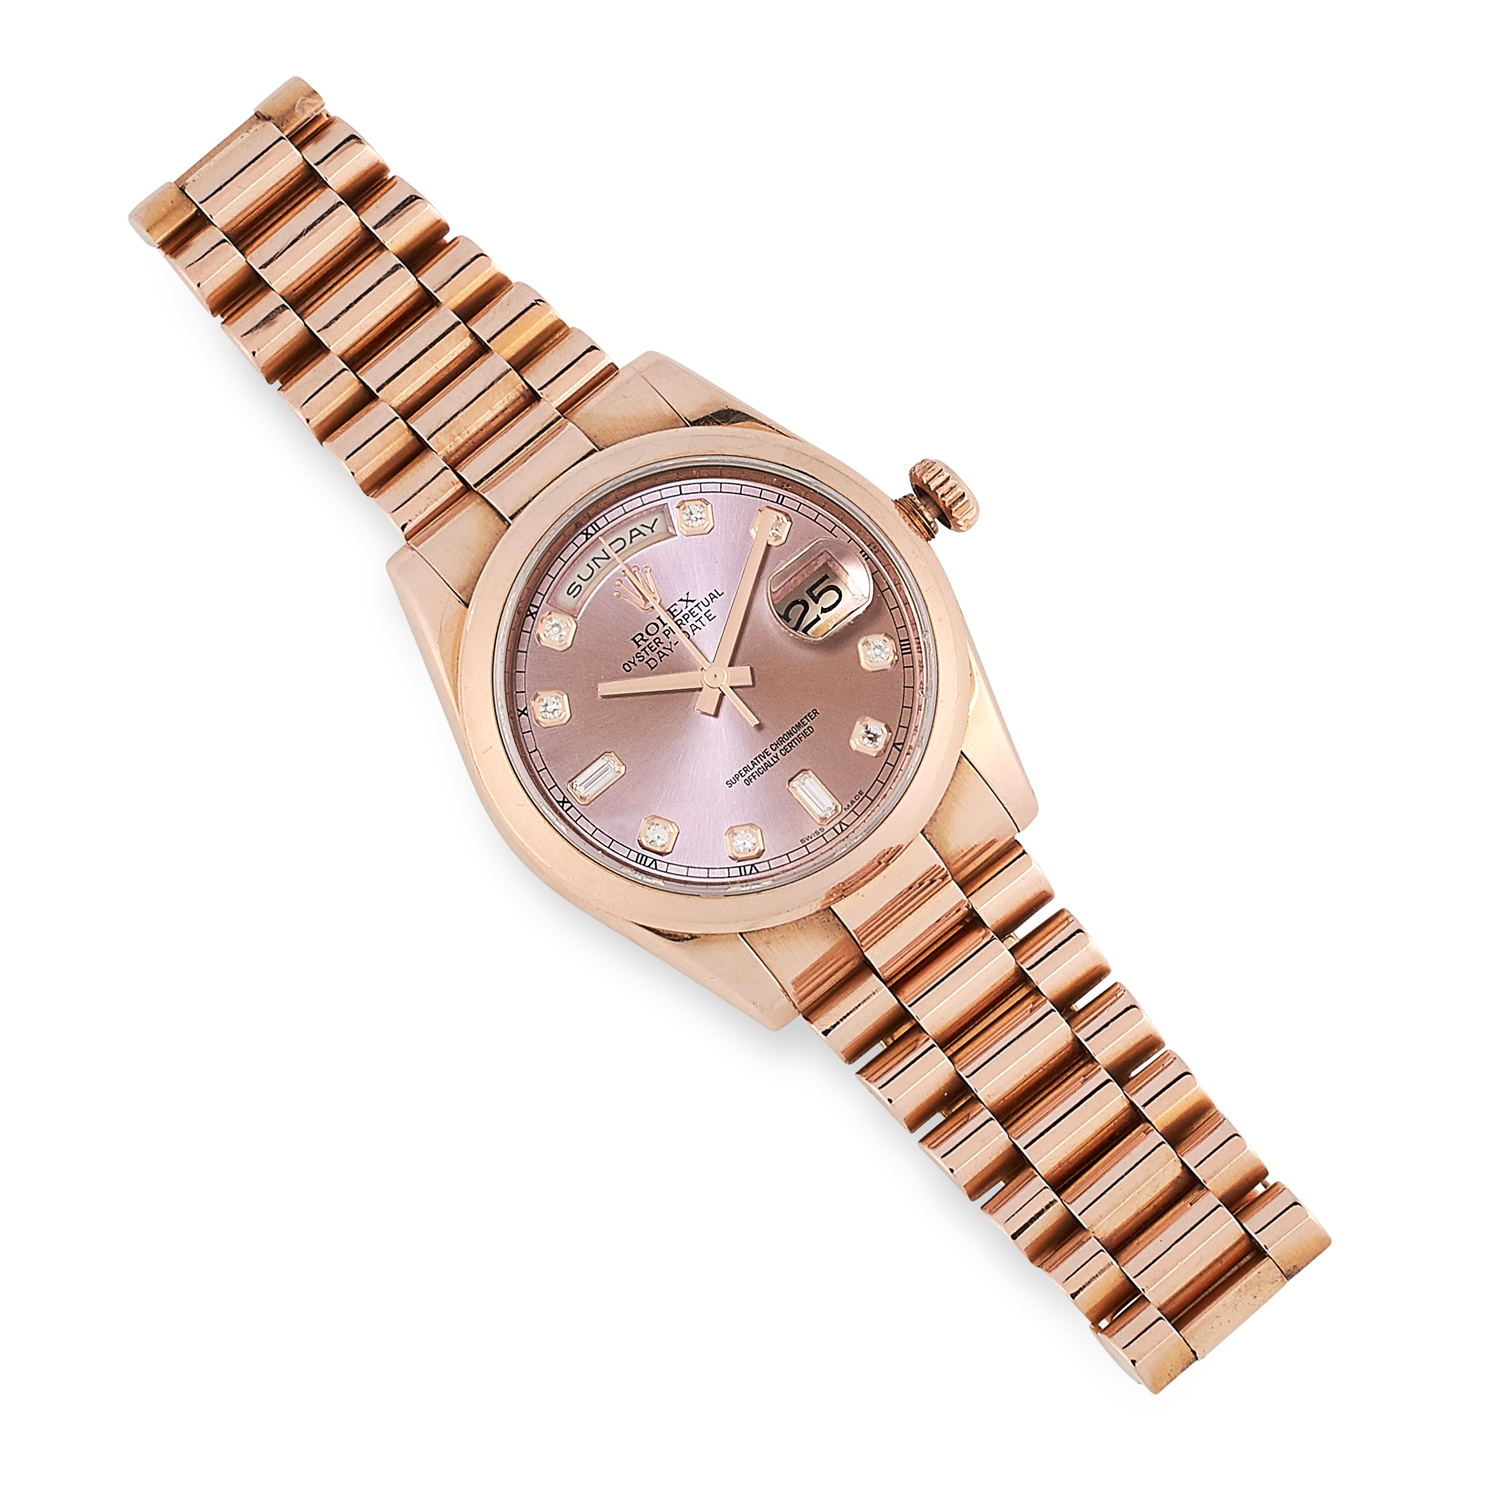 A LADIES OYSTER PERPETUAL DAY-DATE WRISTWATCH, ROLEX in 18ct rose gold, the rosé coloured dial,